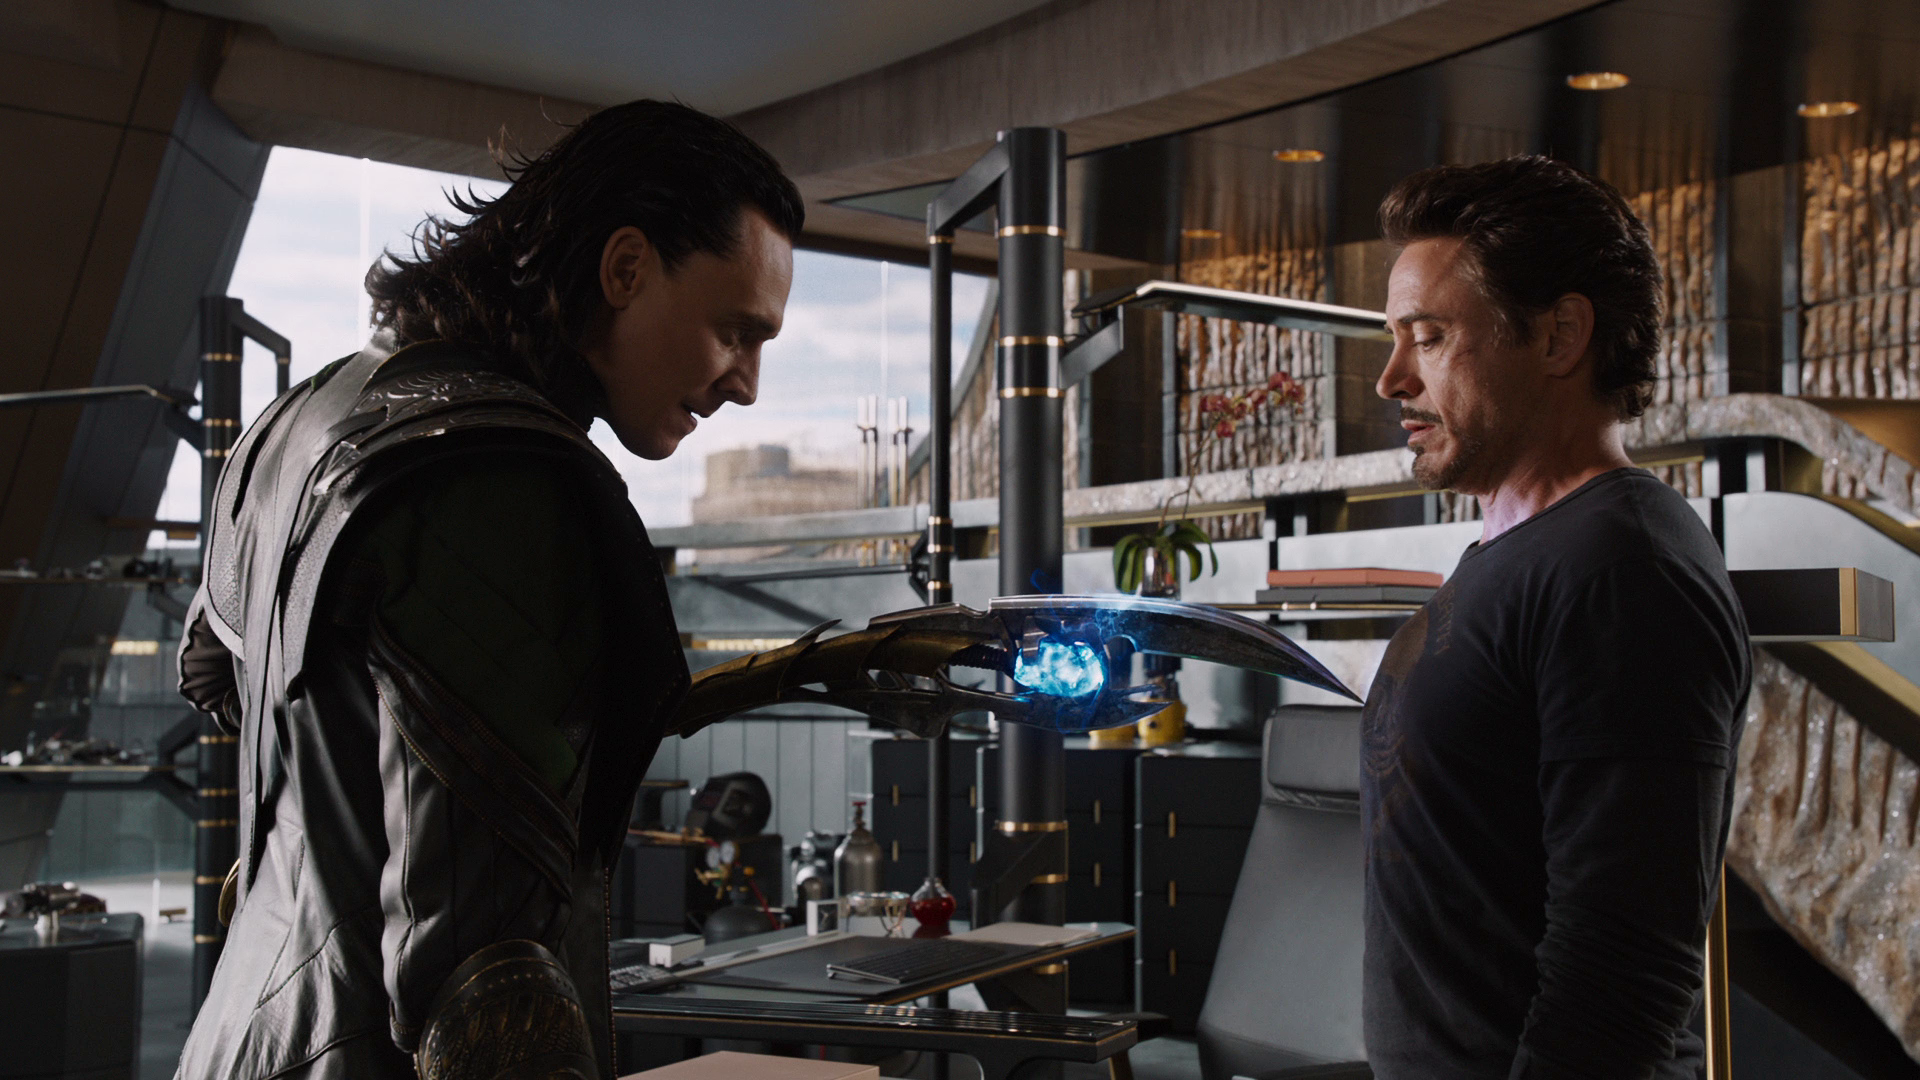 http://vignette2.wikia.nocookie.net/marvelcinematicuniverse/images/1/1b/LokiPerformanceIssues1-Avengers.png/revision/latest?cb=20141201045357